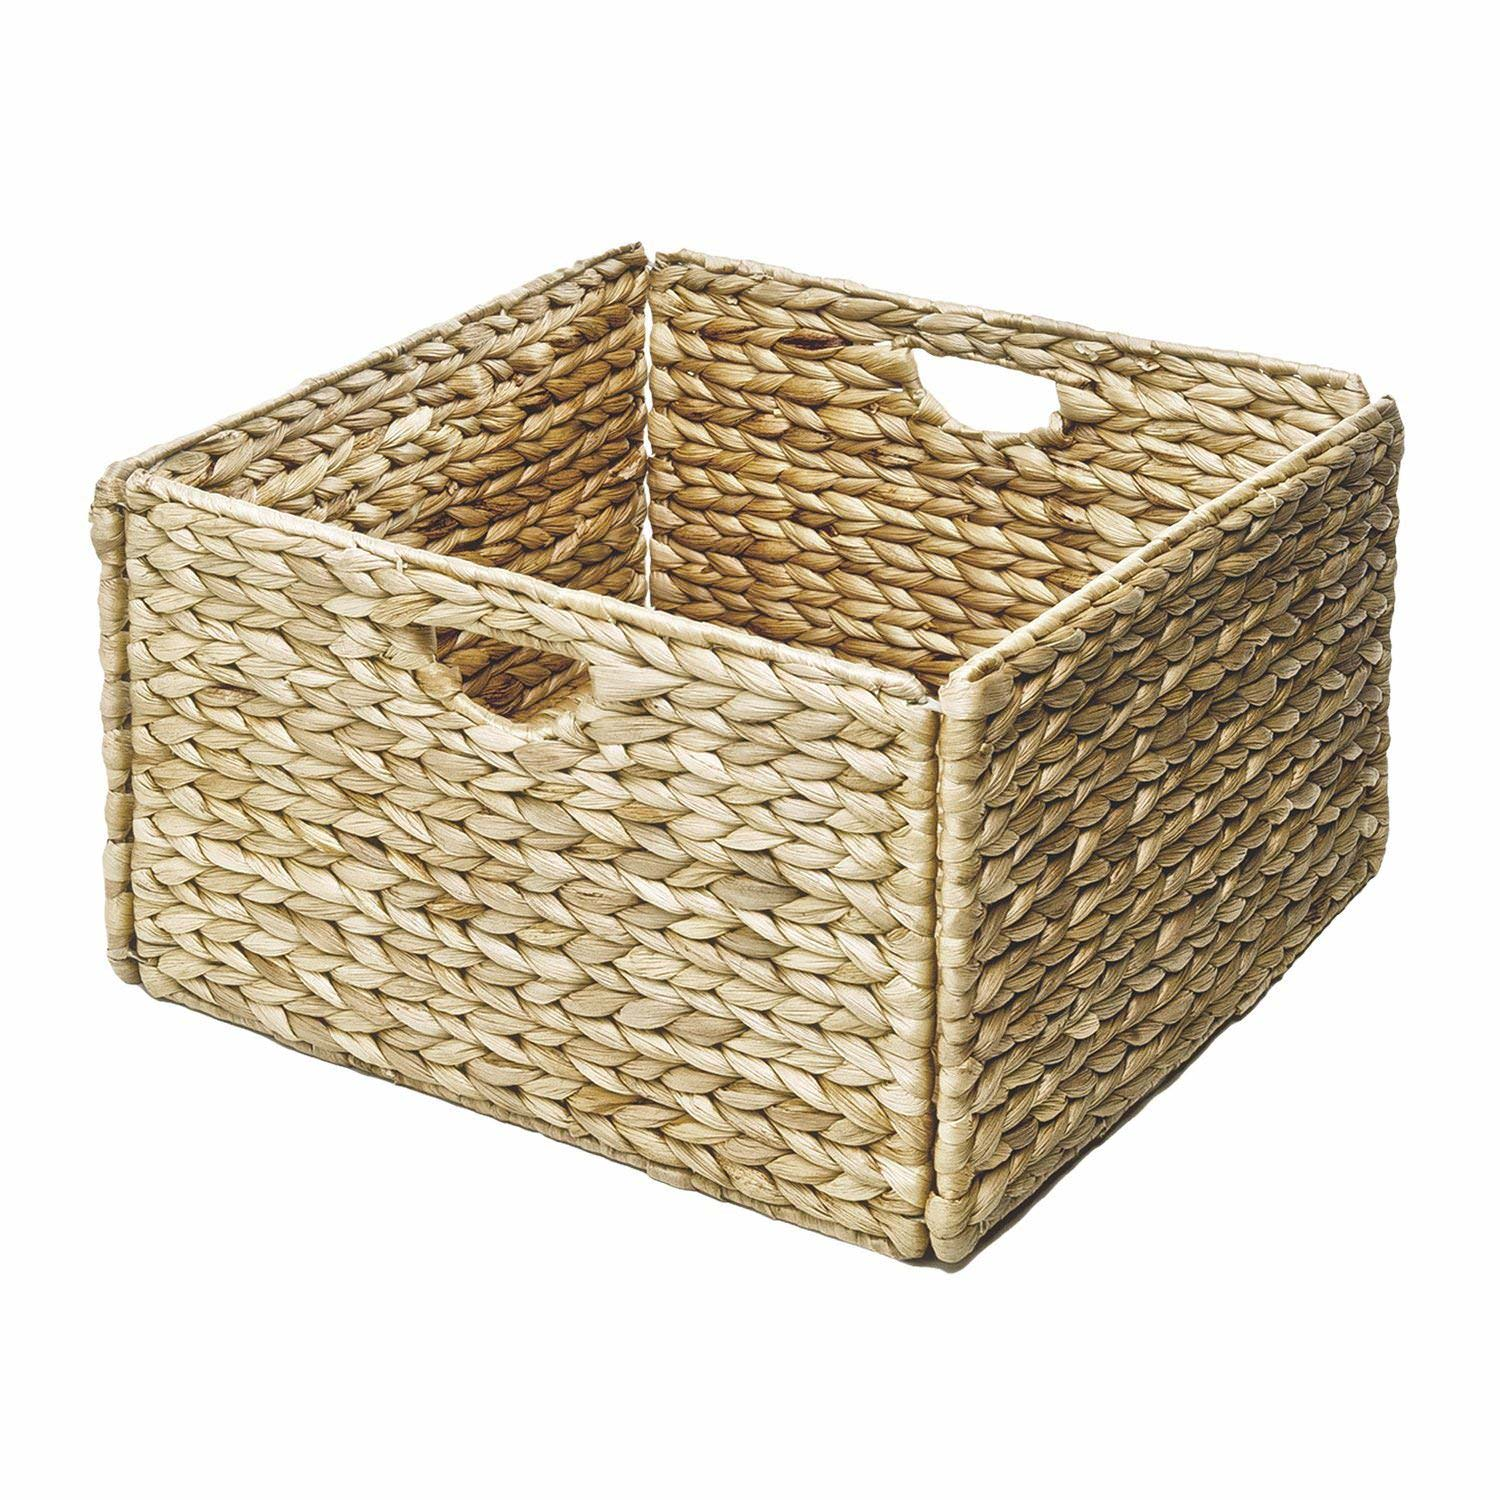 Woven Hyacinth Storage Cube Basket (2 Pack)   13x13x8